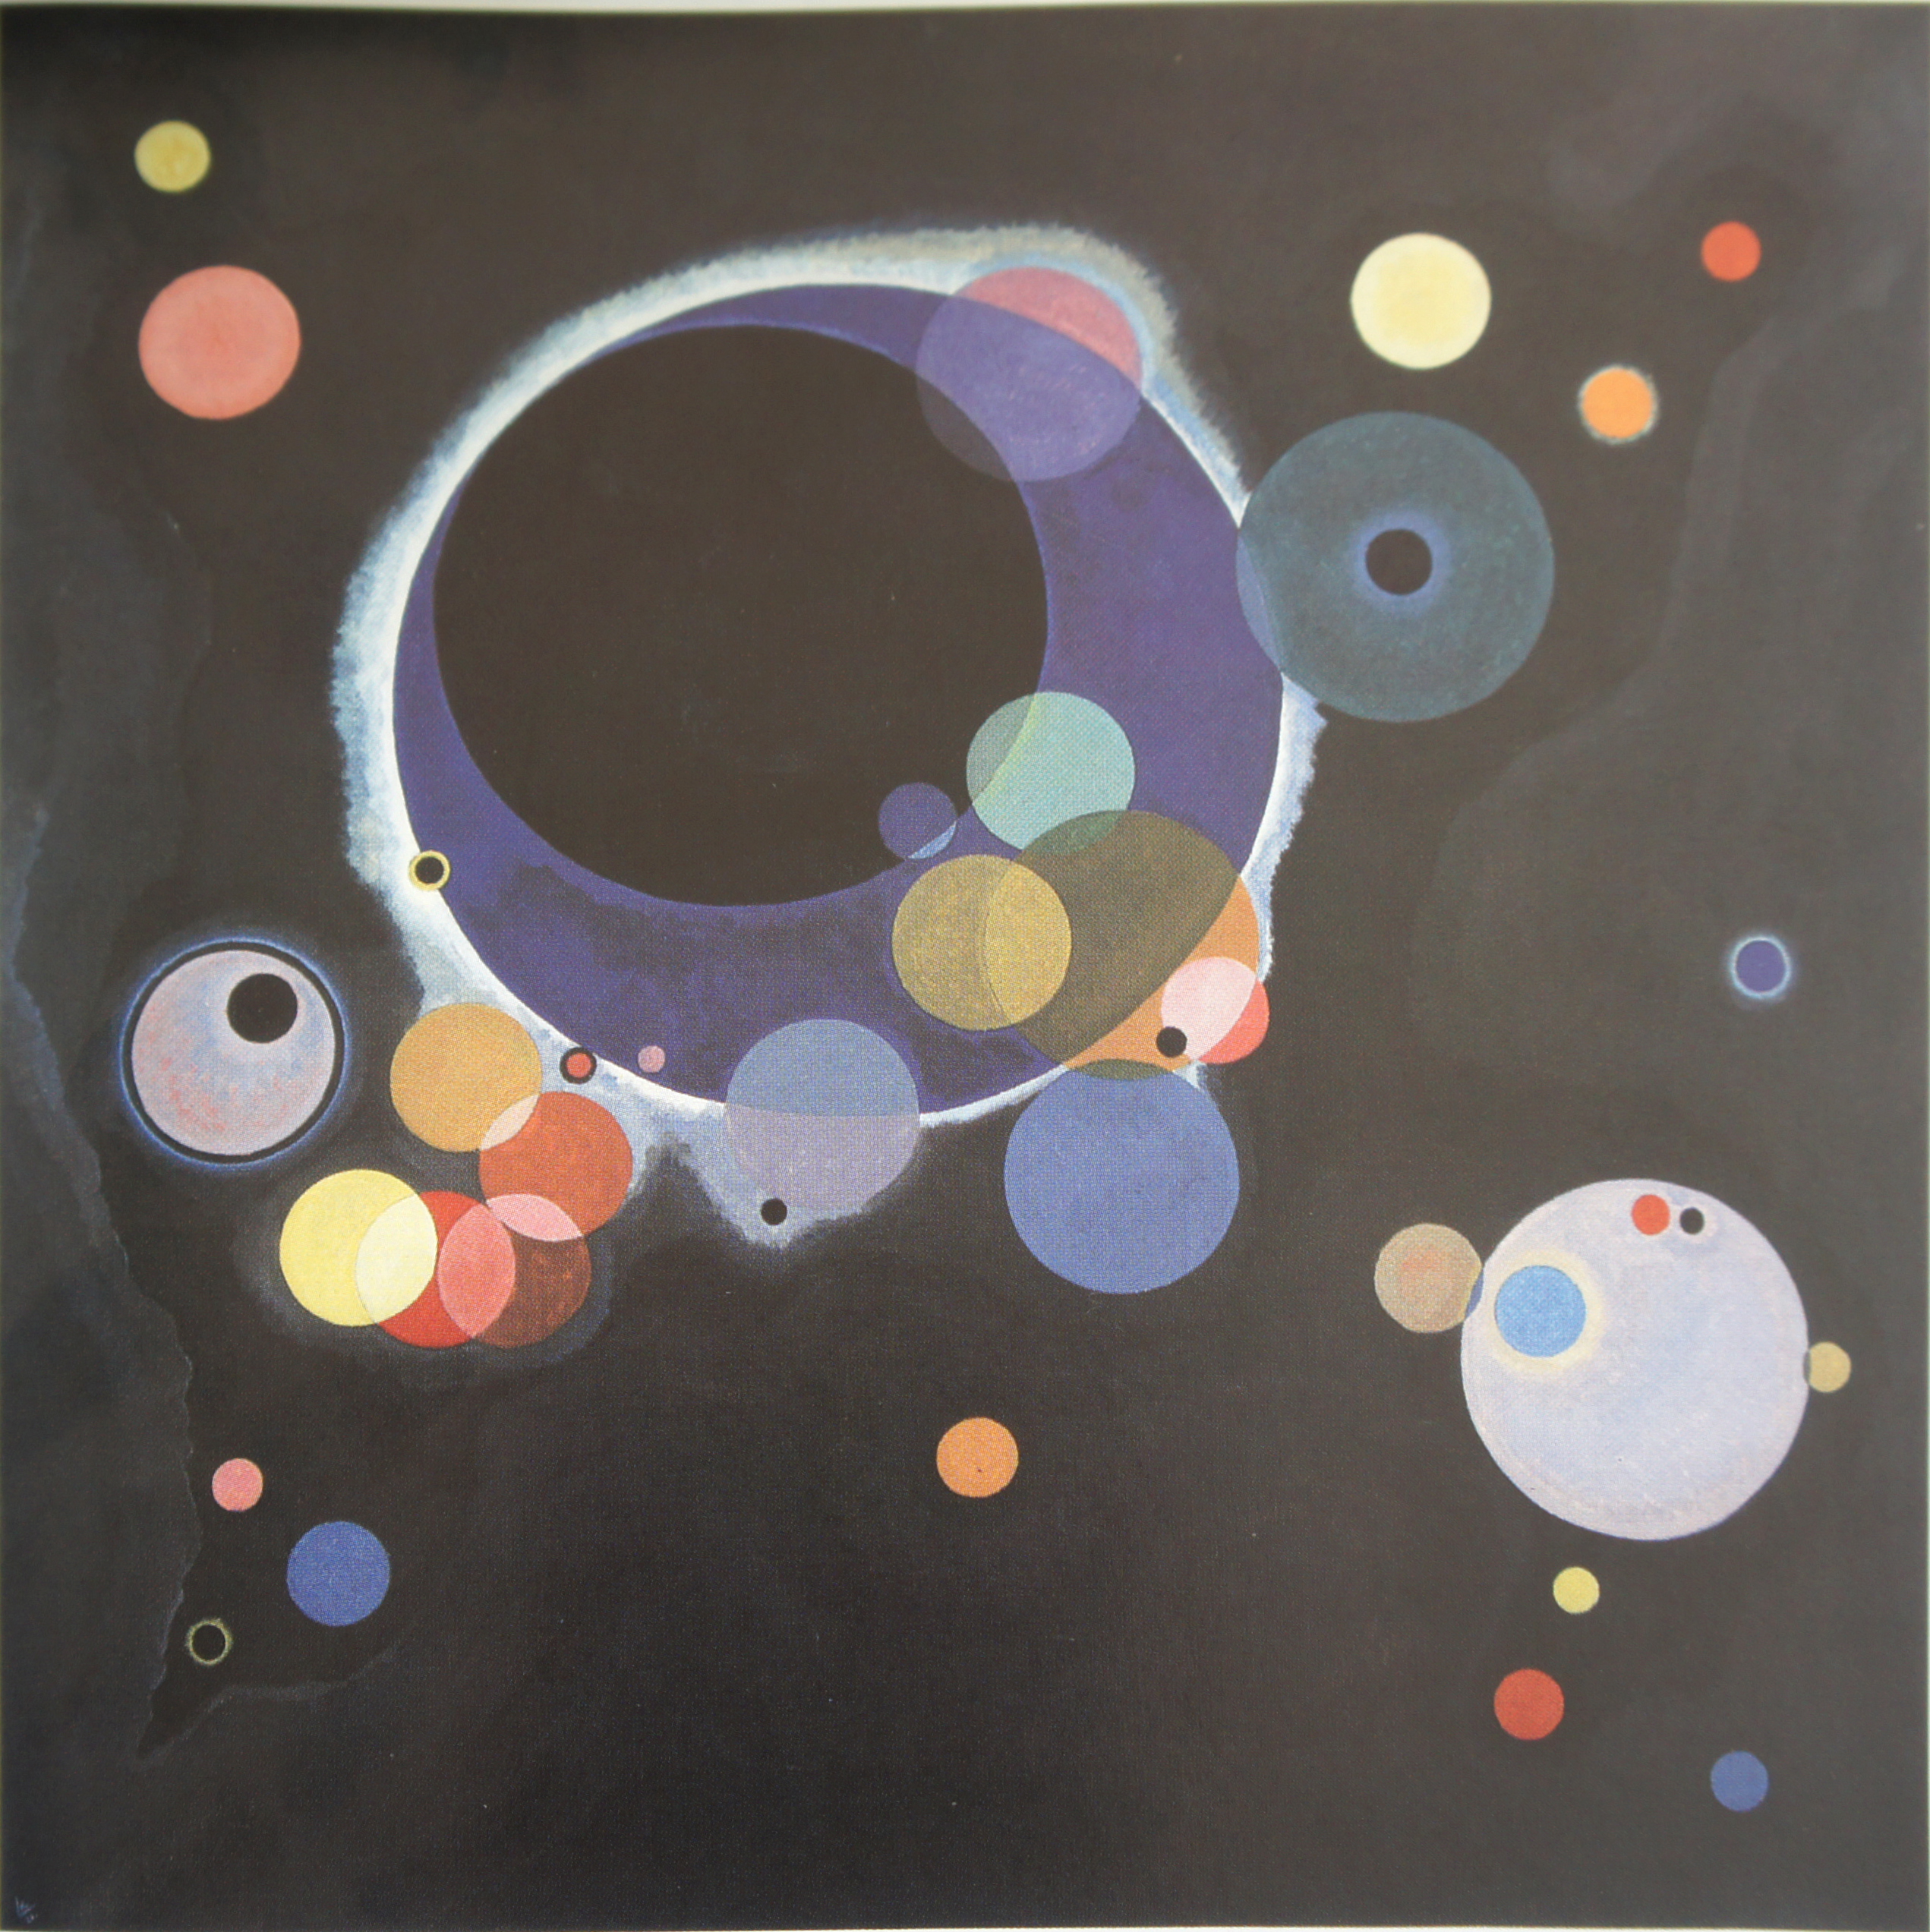 wassily kandinsky Today is the birthday of russian artist wassily kandinsky, a man whose abstract art made history in the 20th century and whose name continues to stump en.